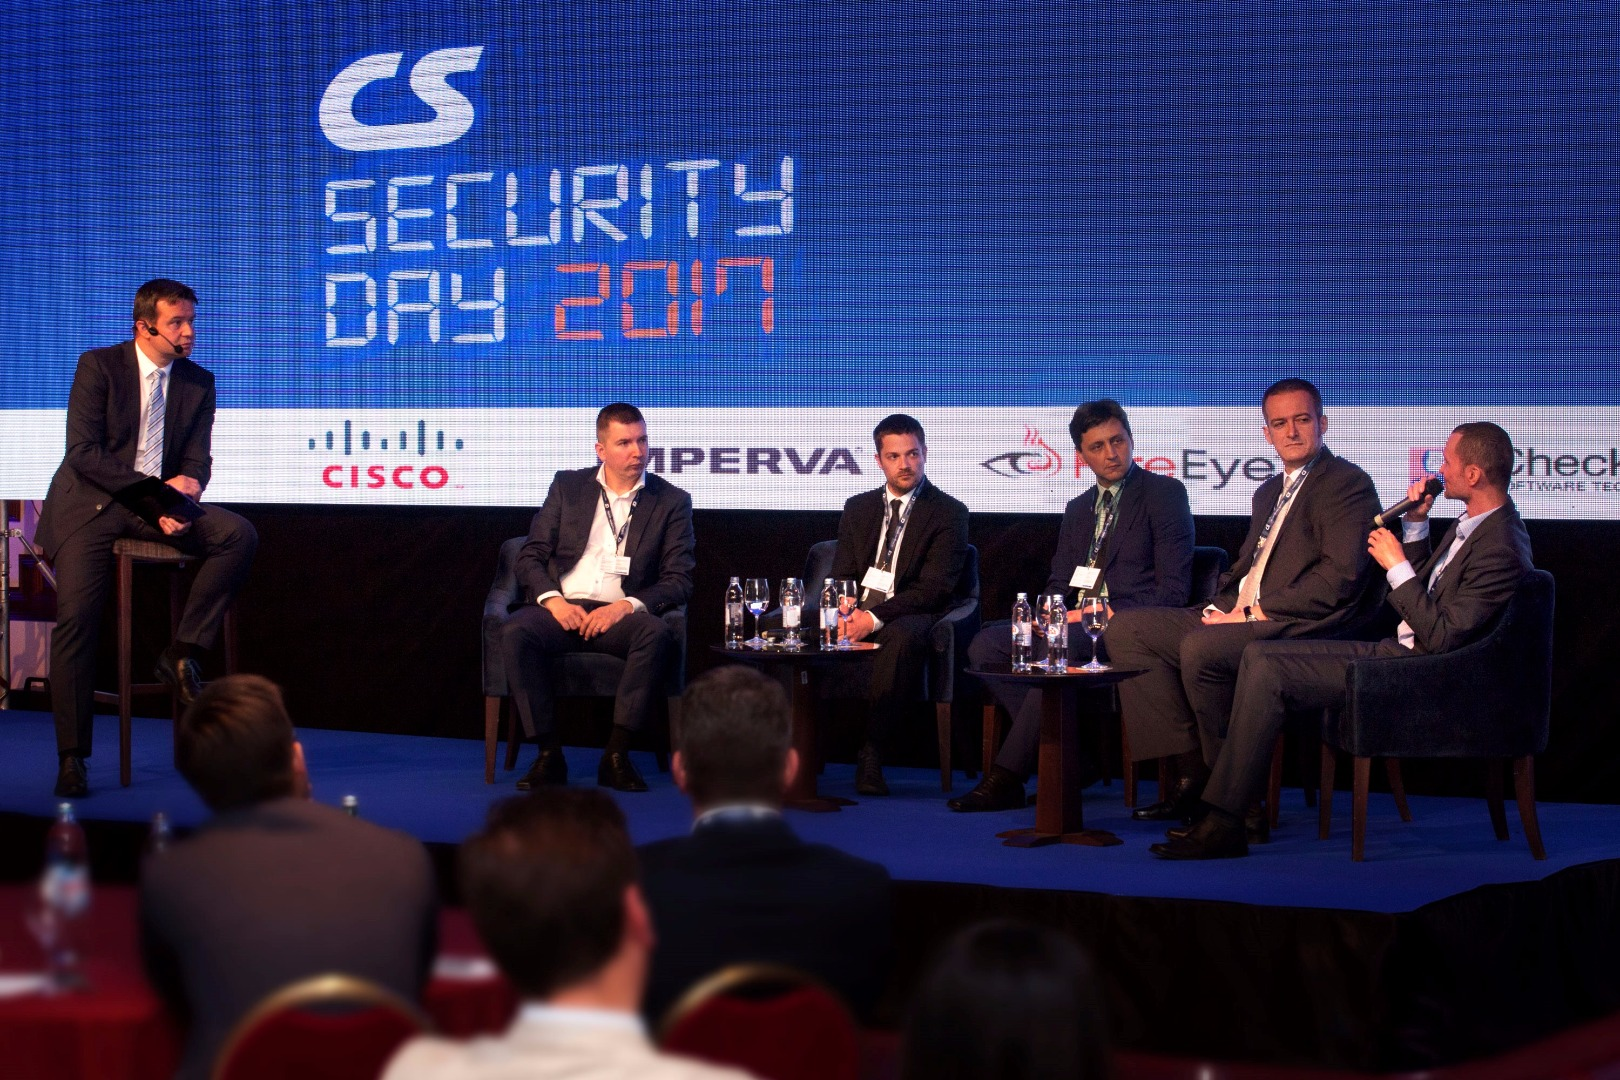 CS Security day 2017